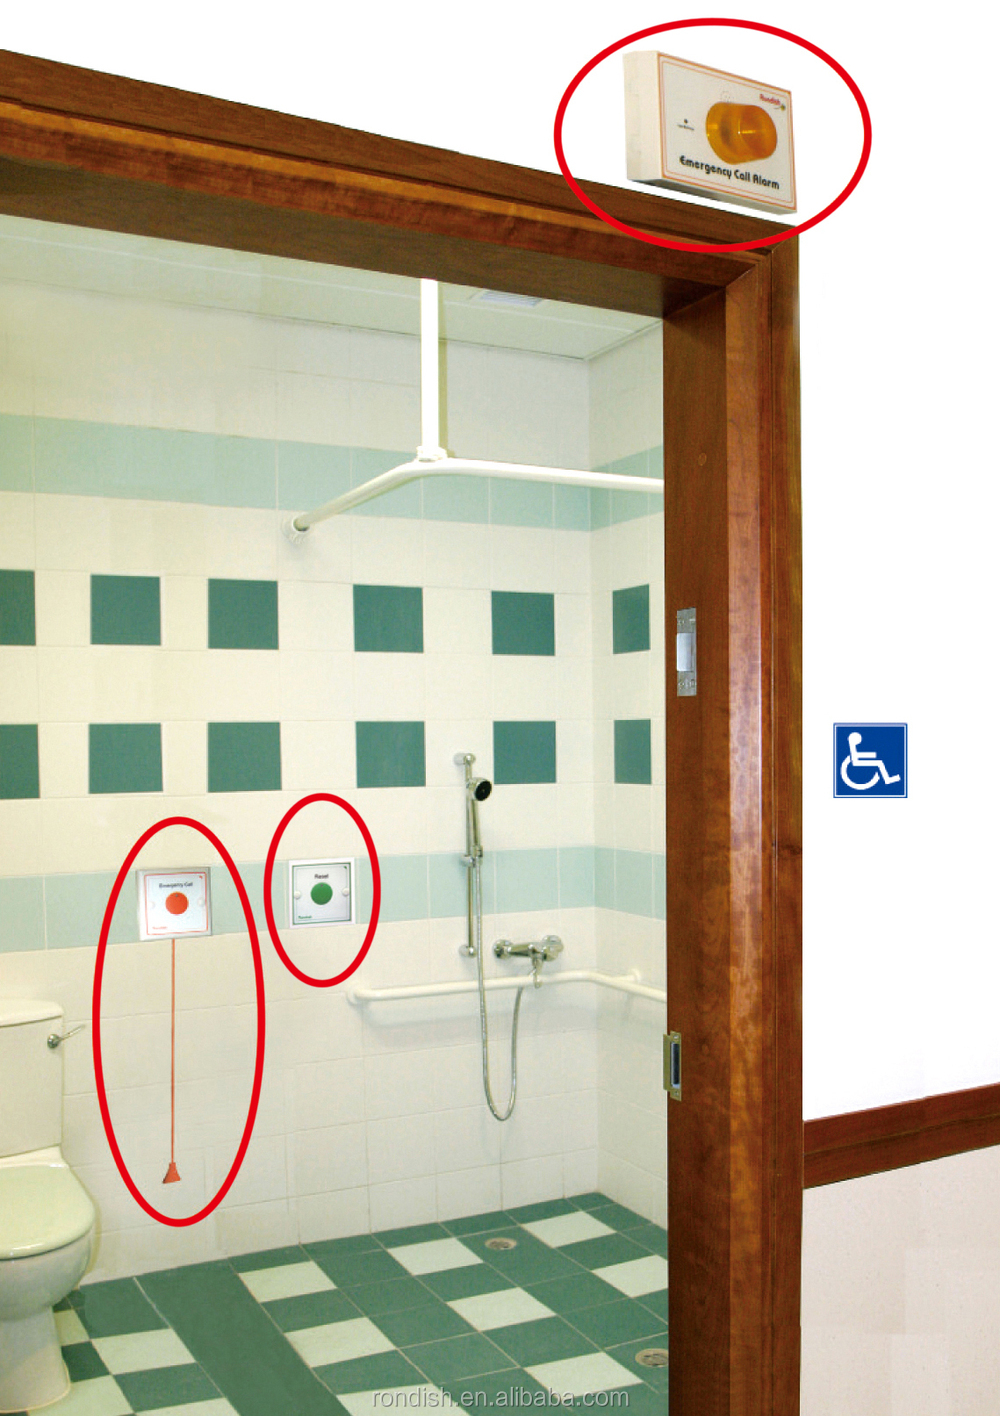 Patient Safety Bathroom Emergency Call Button And Pull